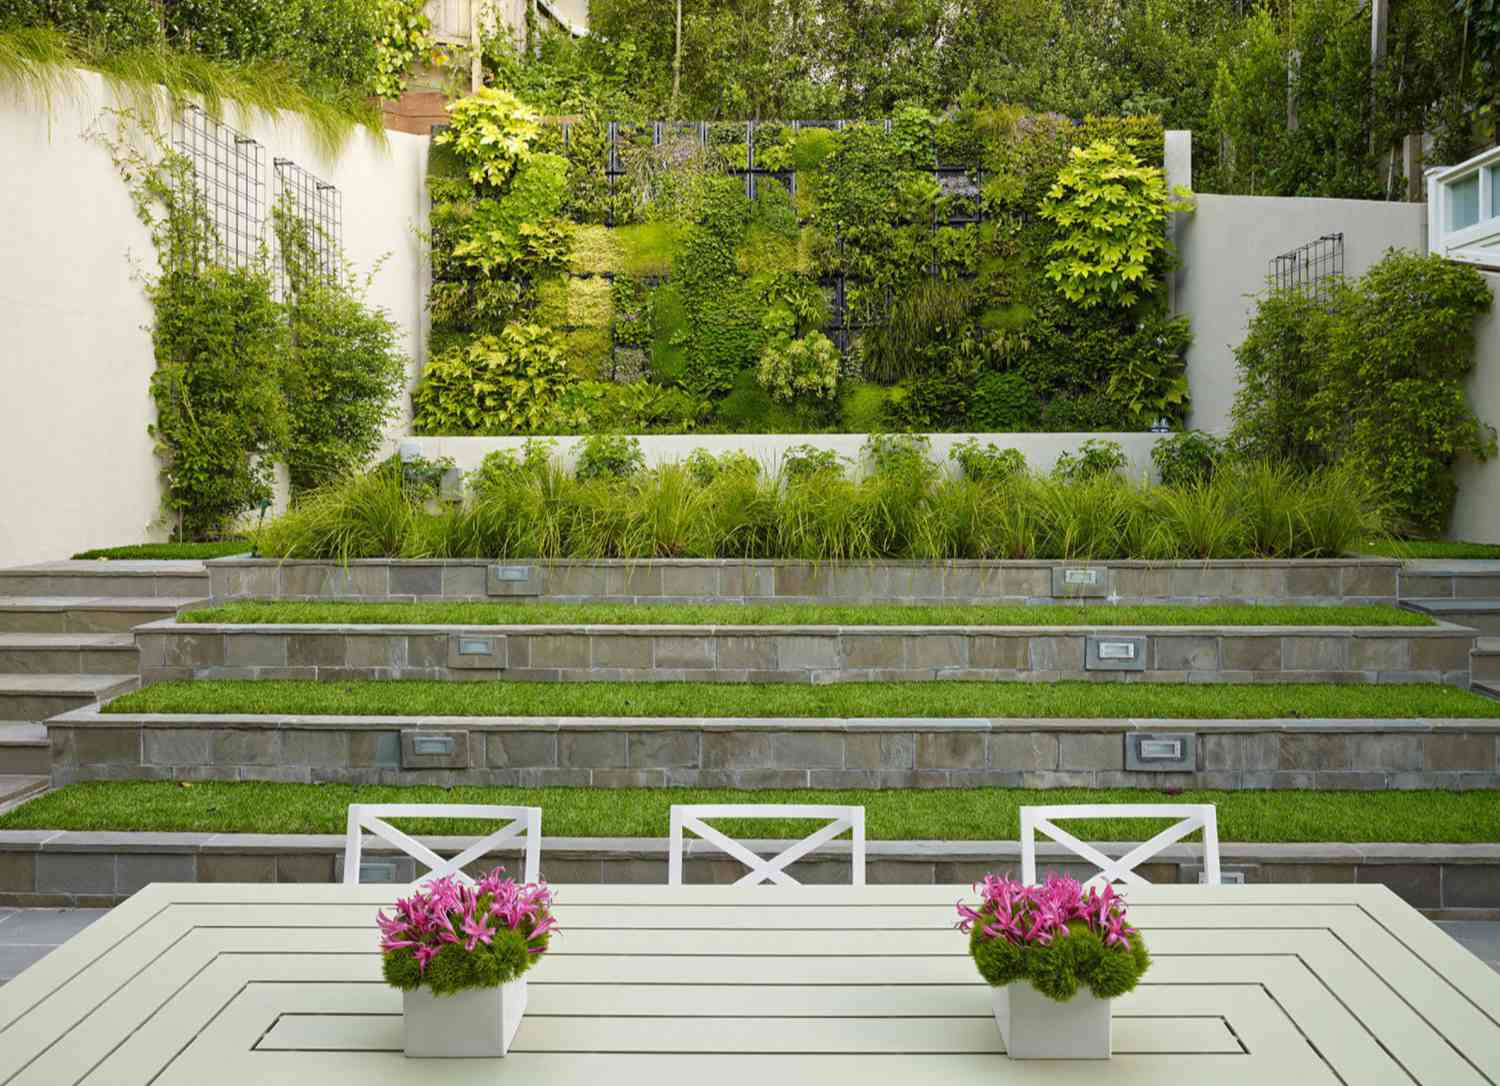 Vertical garden with vines climbing on walls along with a white table, chairs, and flowerpots with pink flowers.